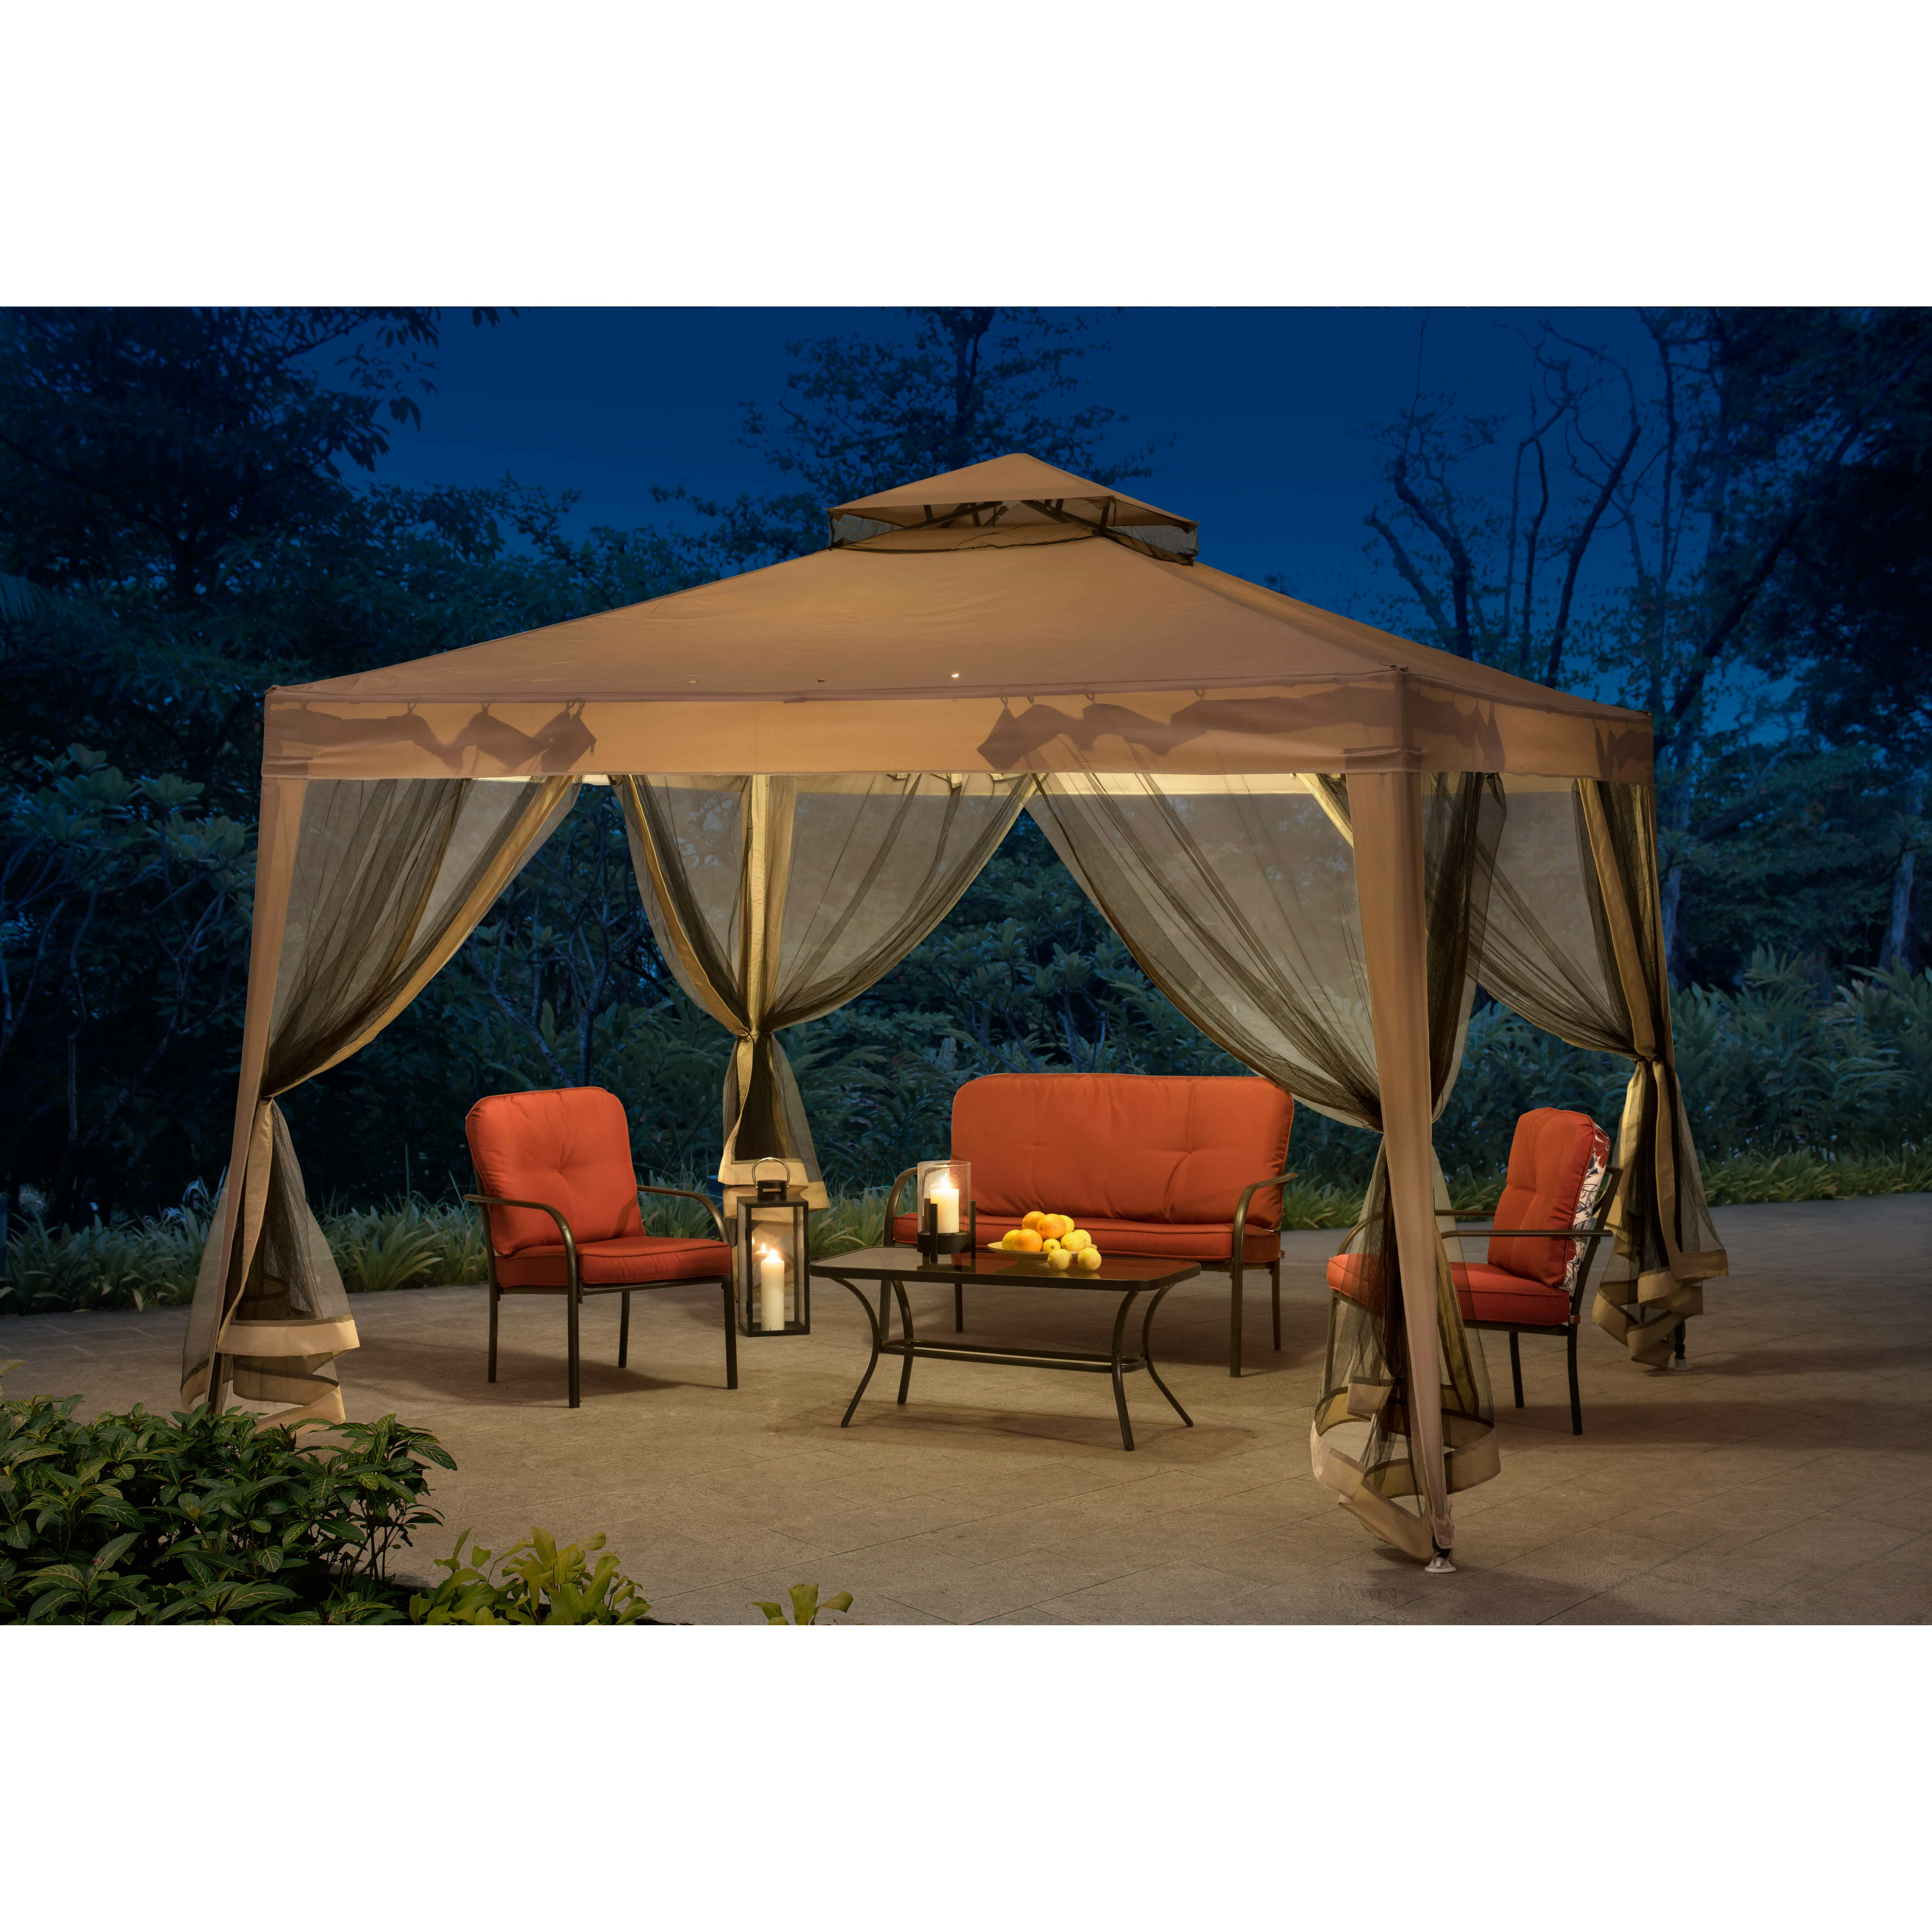 Steel Portable Gazebo : Sunjoy catania ft w d metal portable gazebo